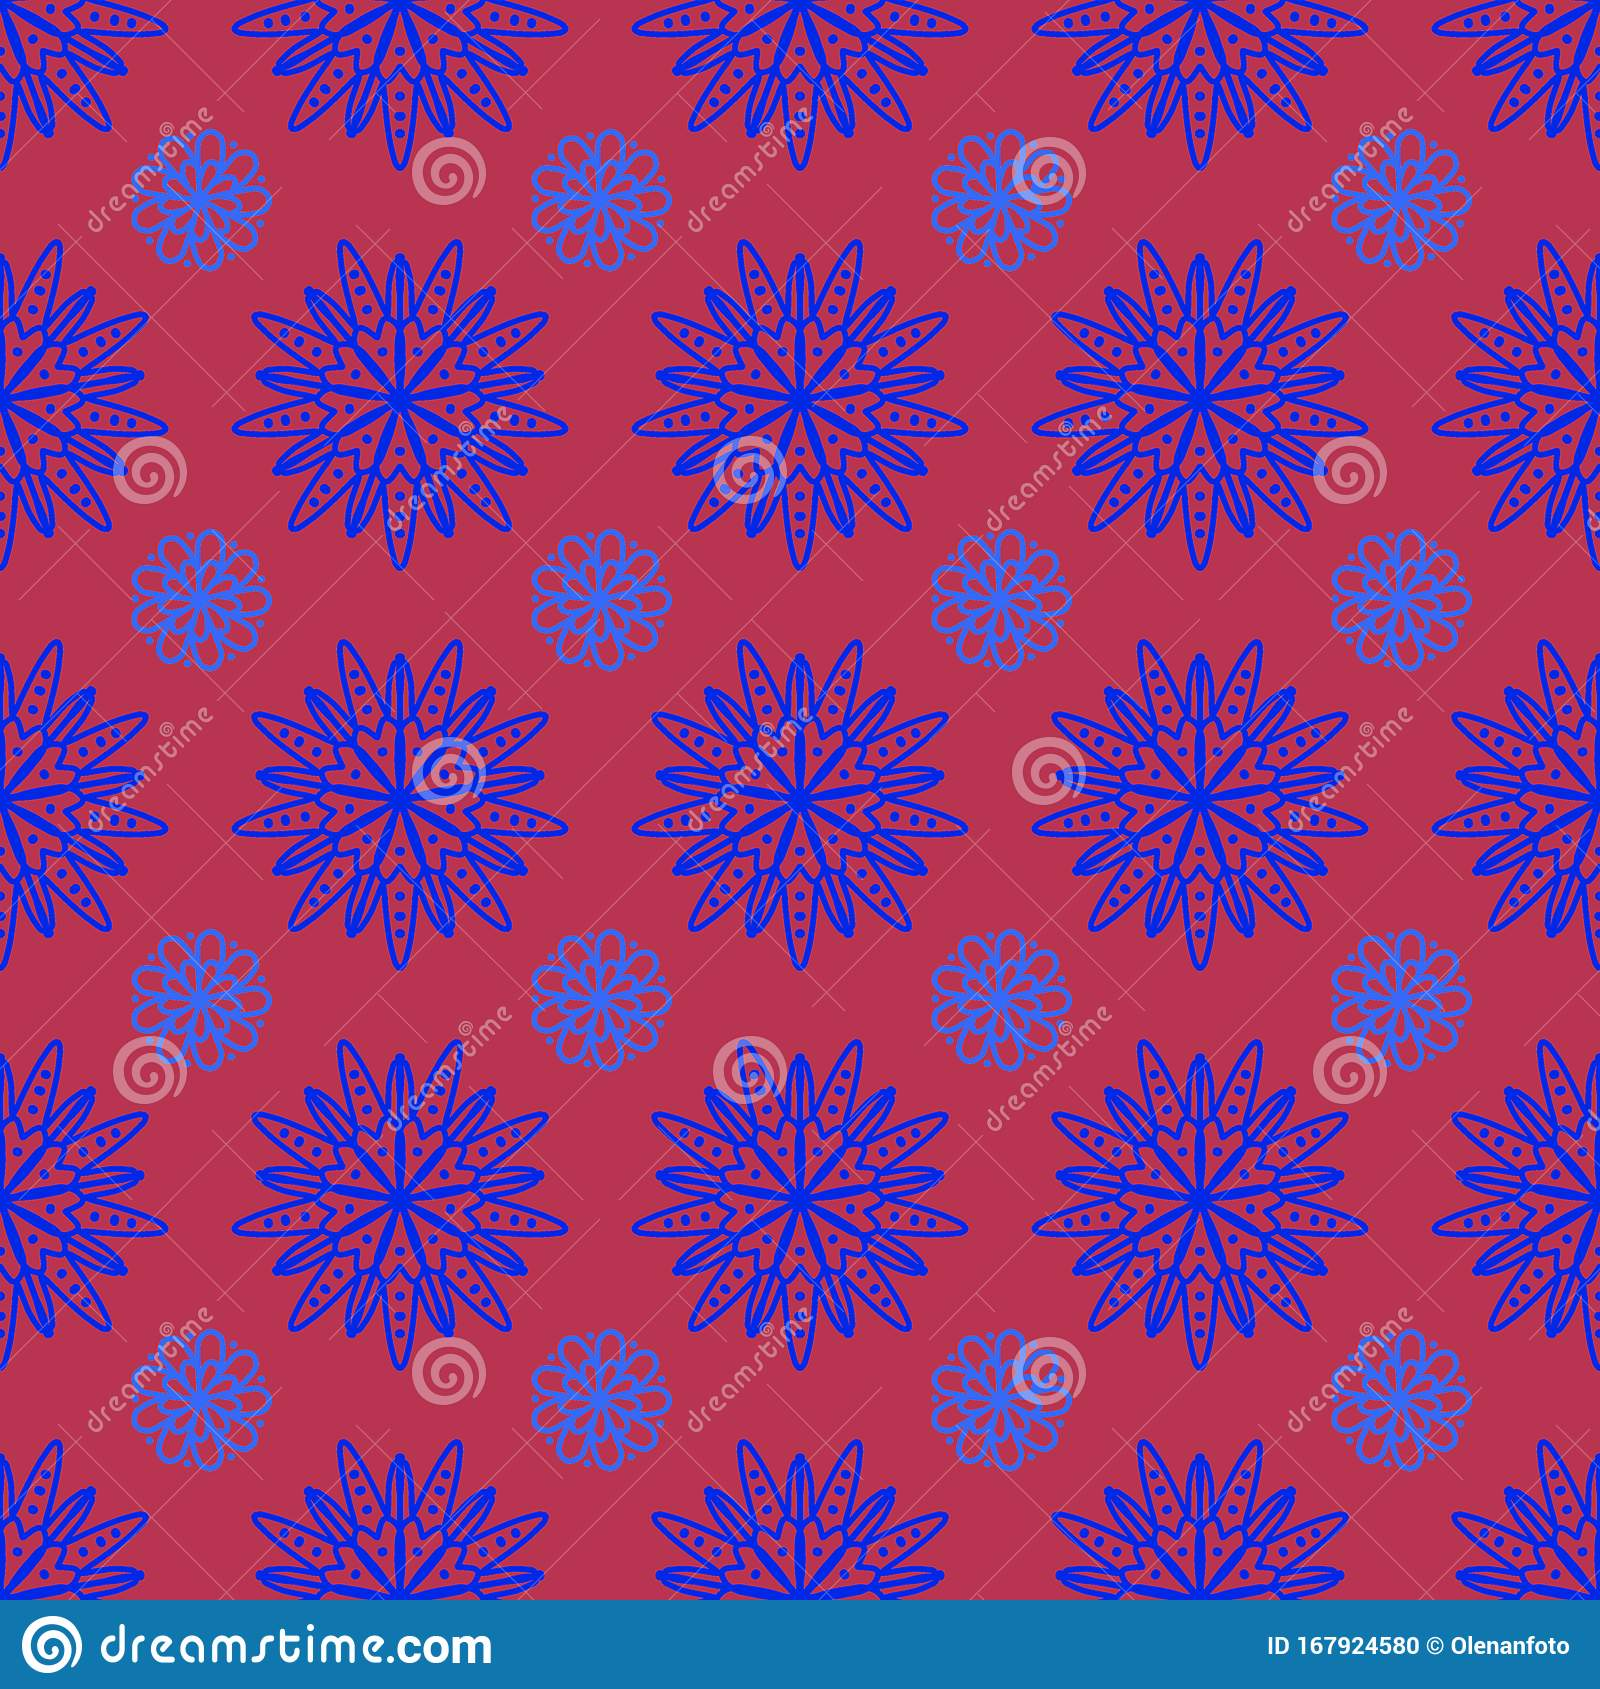 Tile Pattern Seamless With Floral Ornaments Flower Texture For